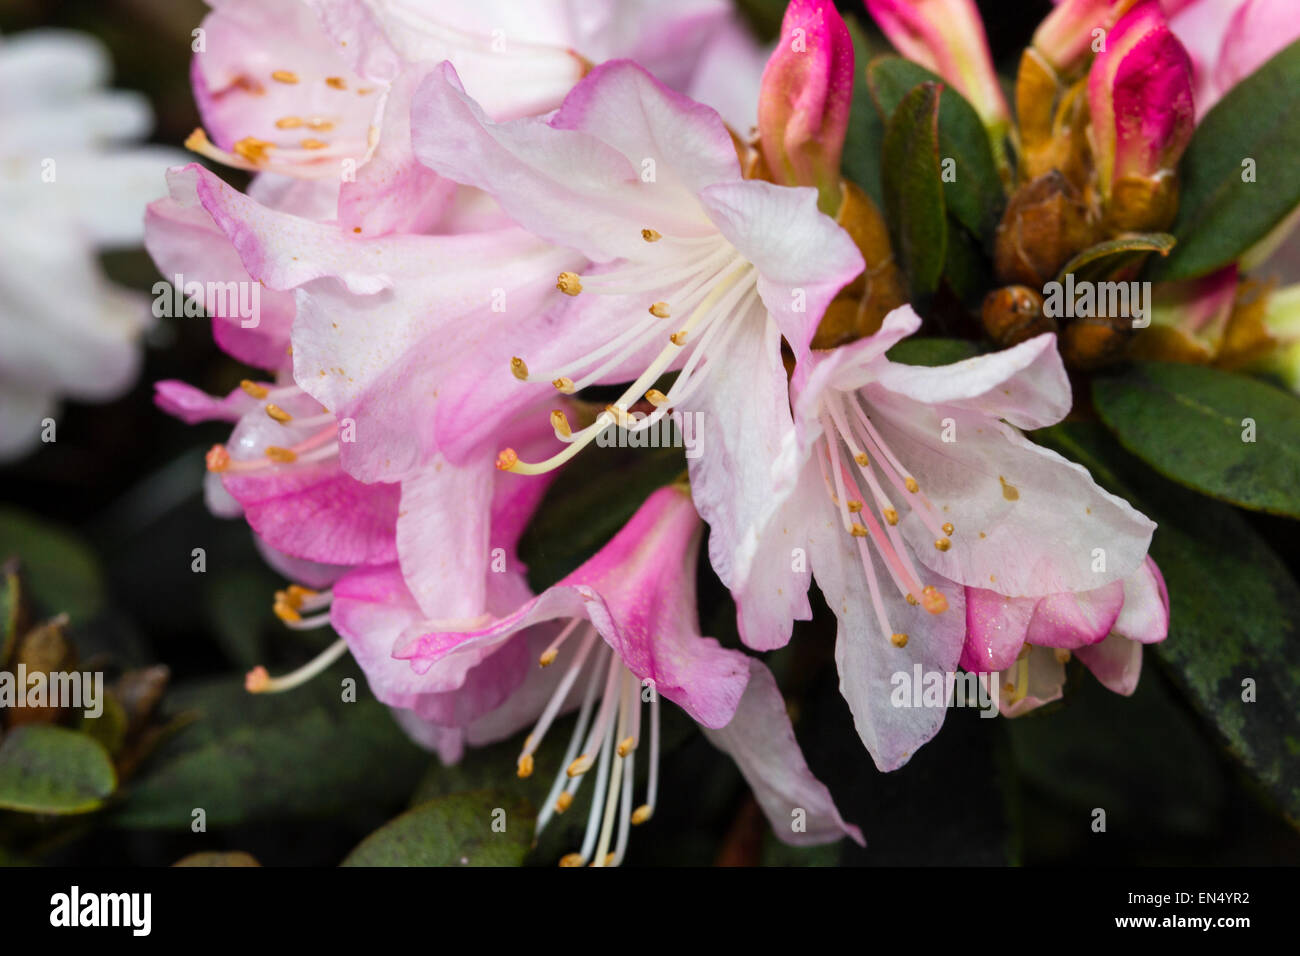 Spring flowers of the dwarf Rhododendron 'Ginny Gee' - Stock Image